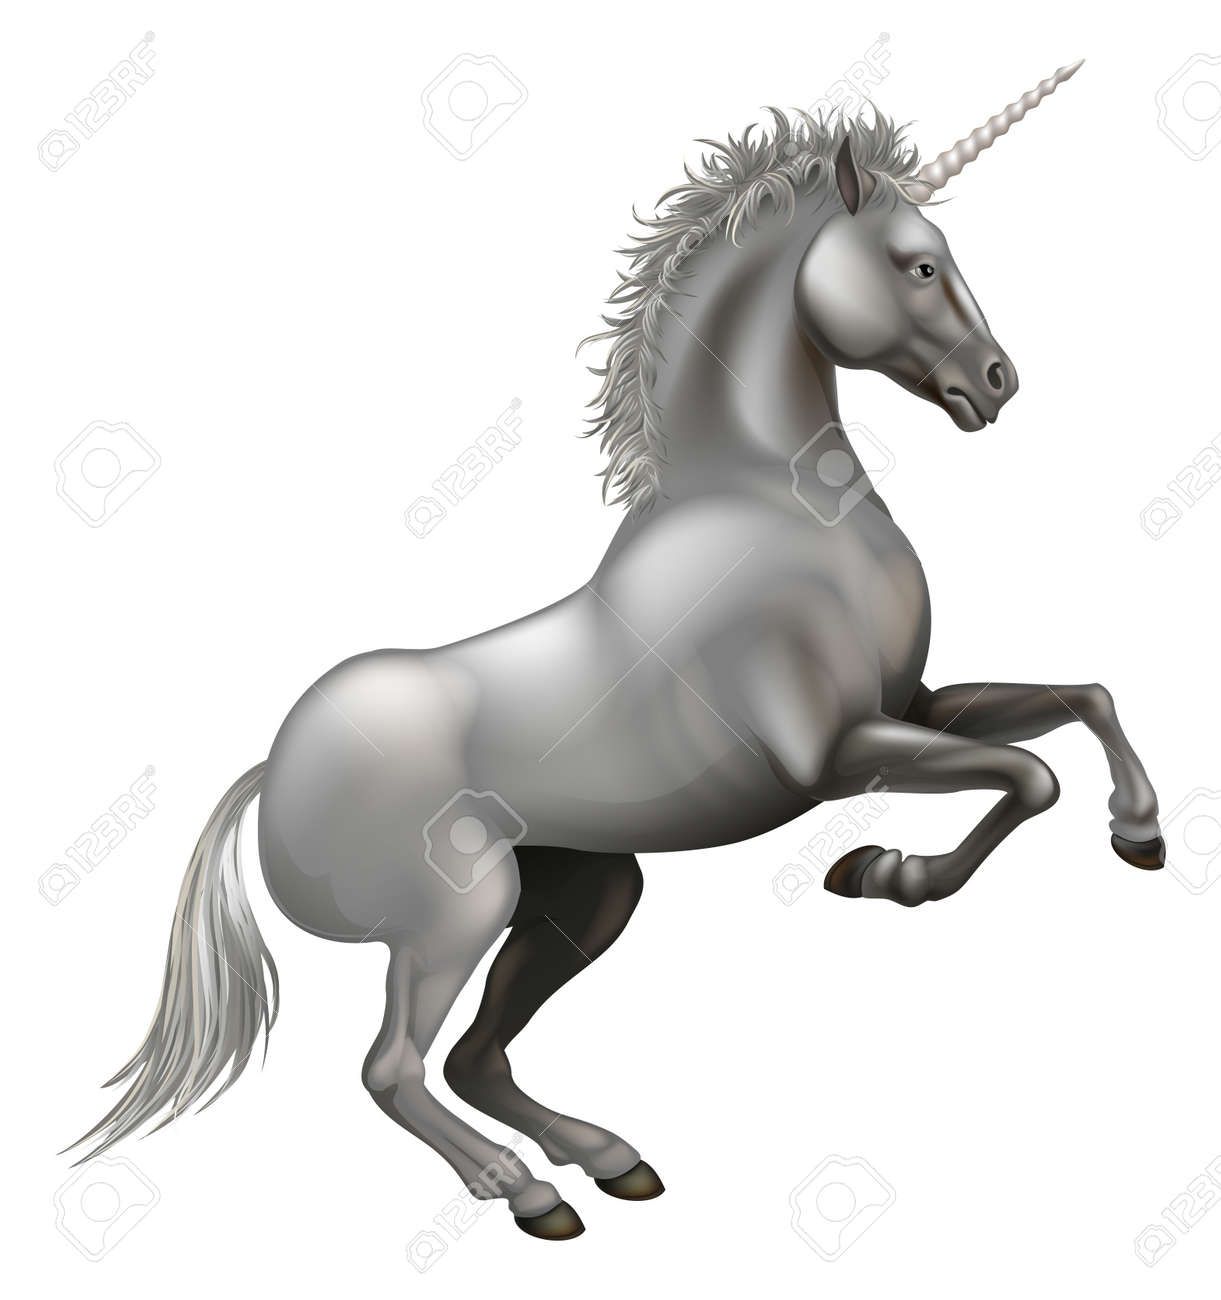 Illustration of a powerful unicorn rearing on its hind legs Stock Vector - 16333428